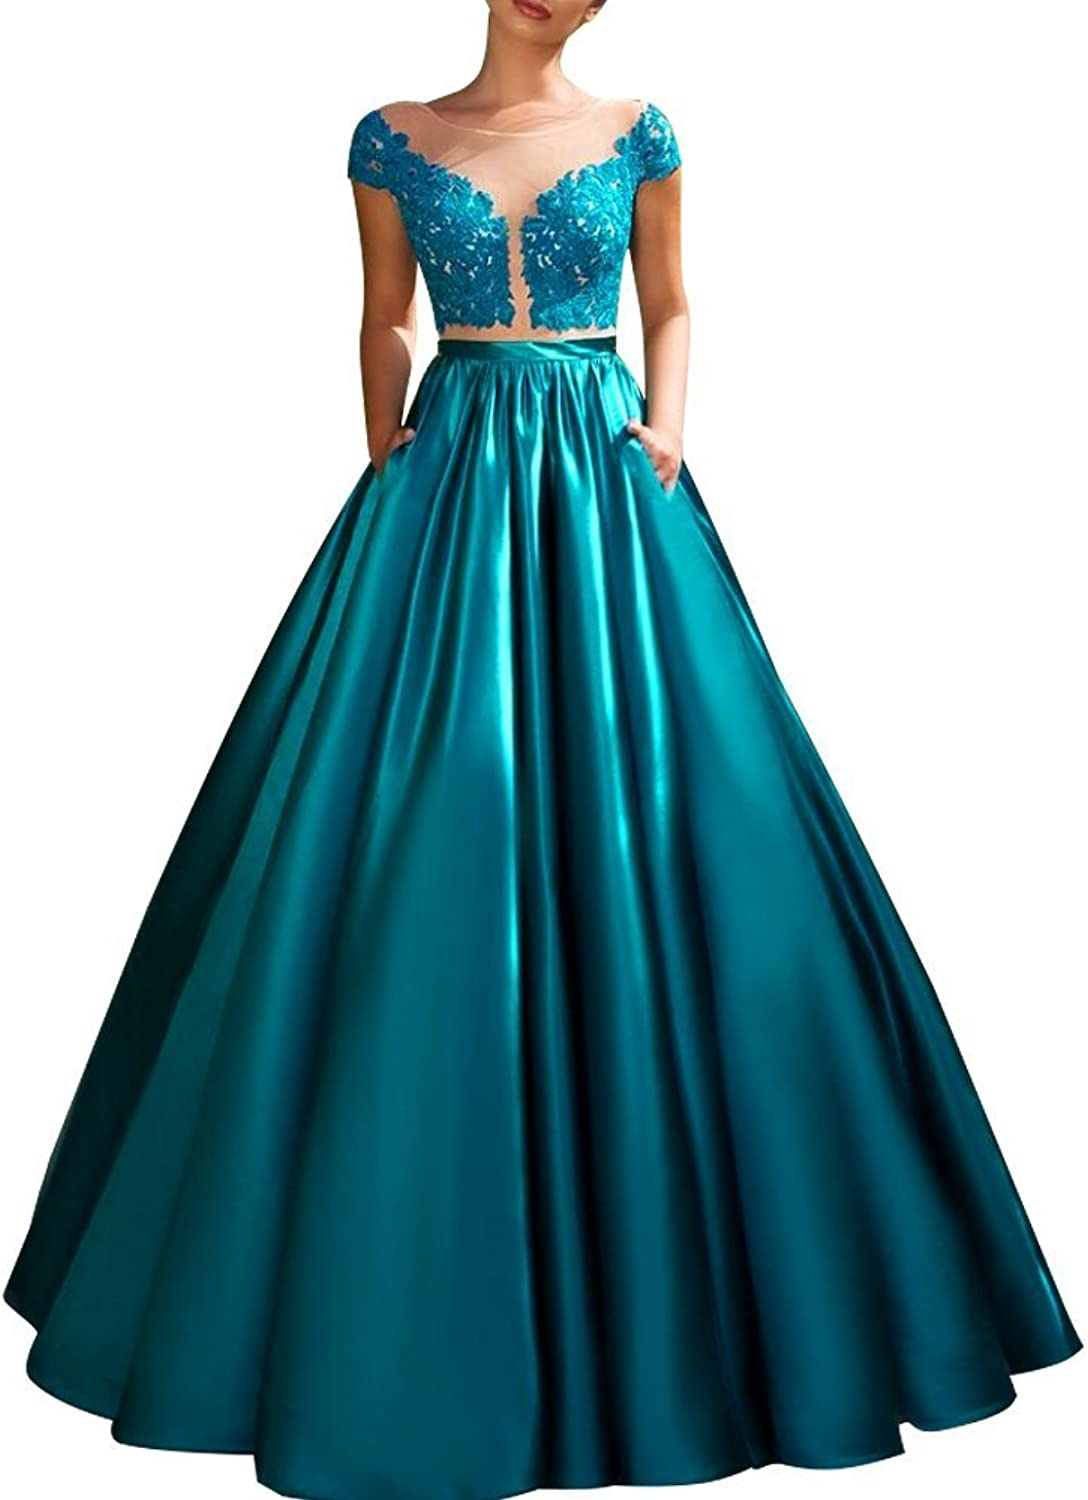 Homdor Elegant Teal Women's Evening Dress With Lace s Illusion Formal Prom Dresses